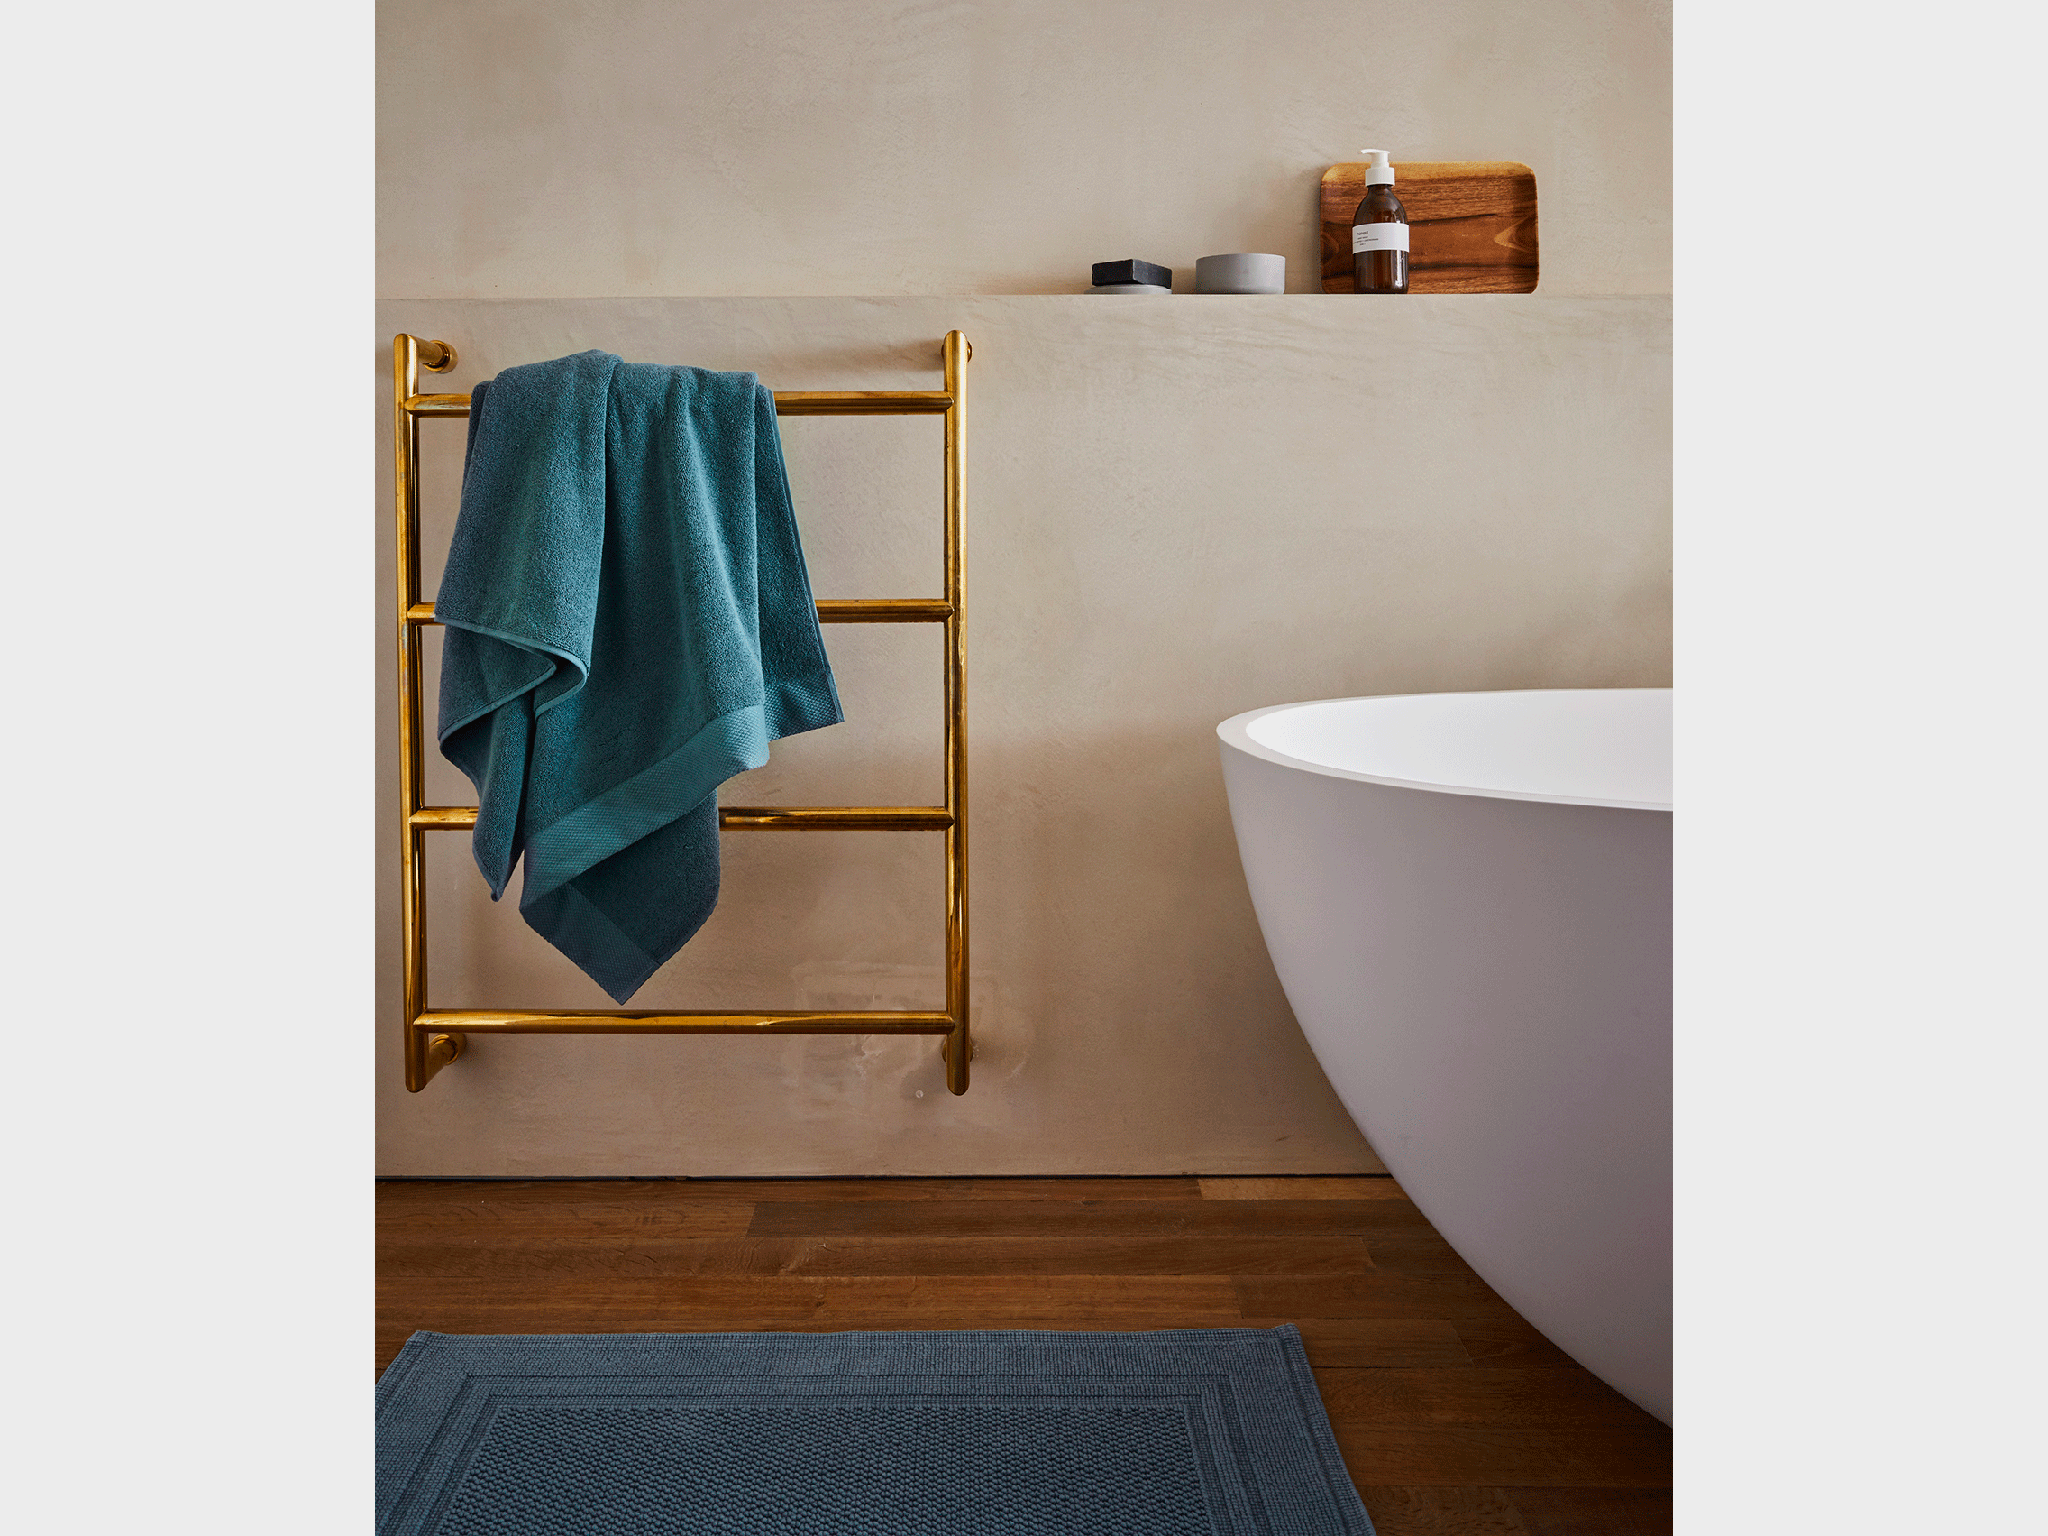 12 best hand towels and bath towels | The Independent